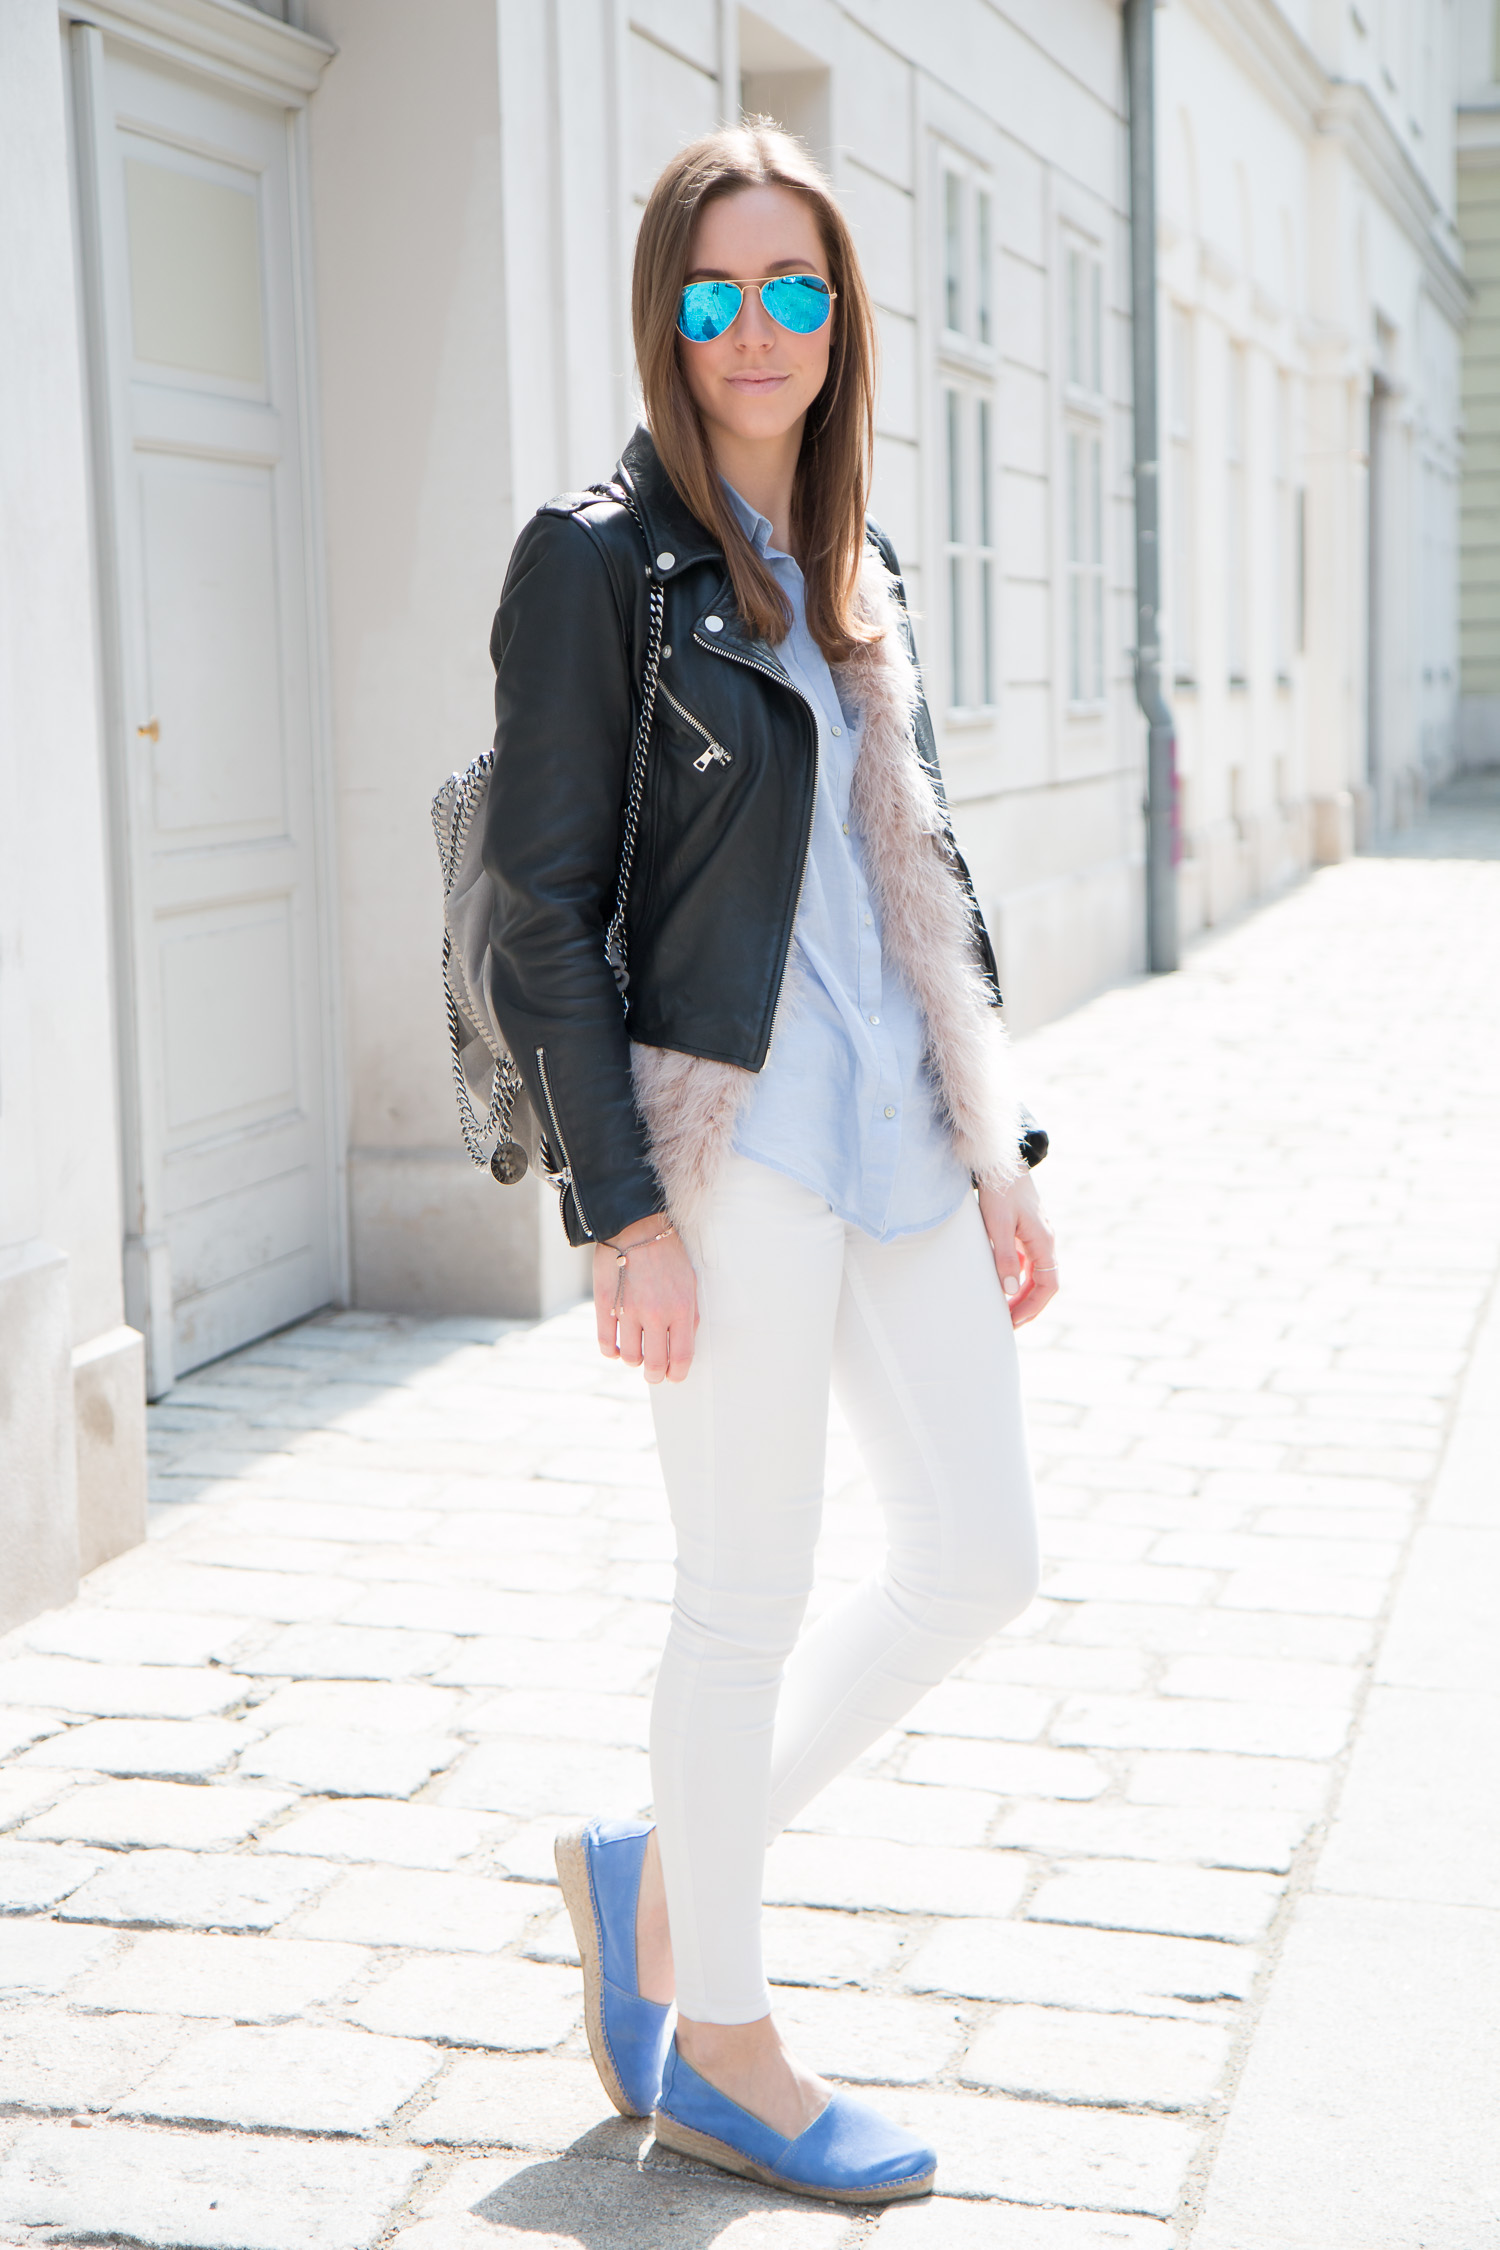 La Palmerie Espadrilles | The Daily Dose